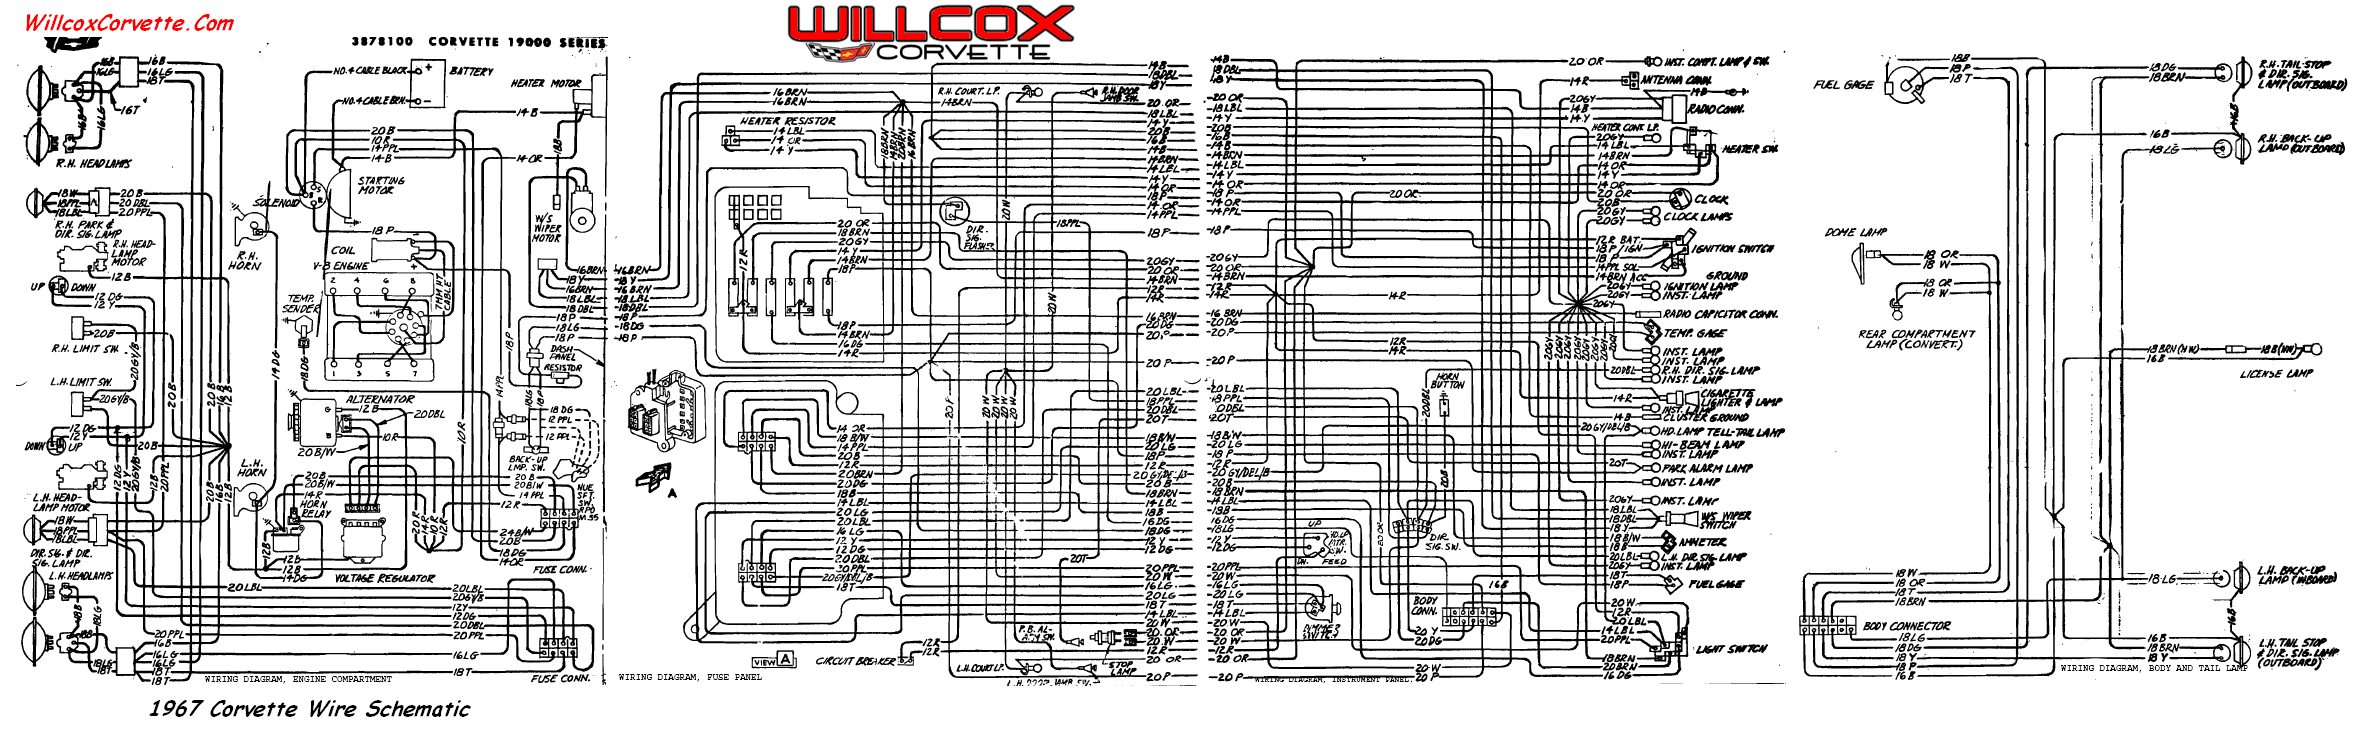 67 wire schematic for tracing wires wiring diagram for 1966 corvette readingrat net 66 Corvette at gsmx.co